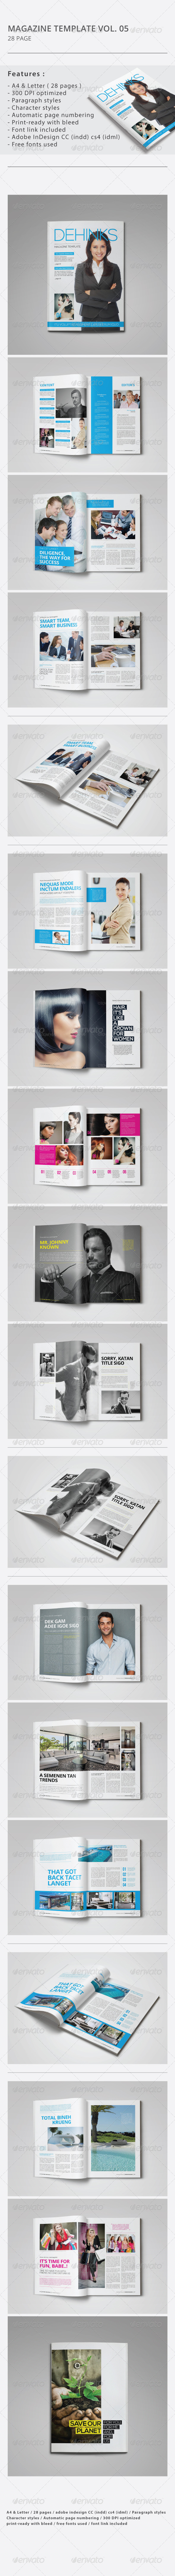 GraphicRiver Indesign Magazine Template Vol.05 8777614